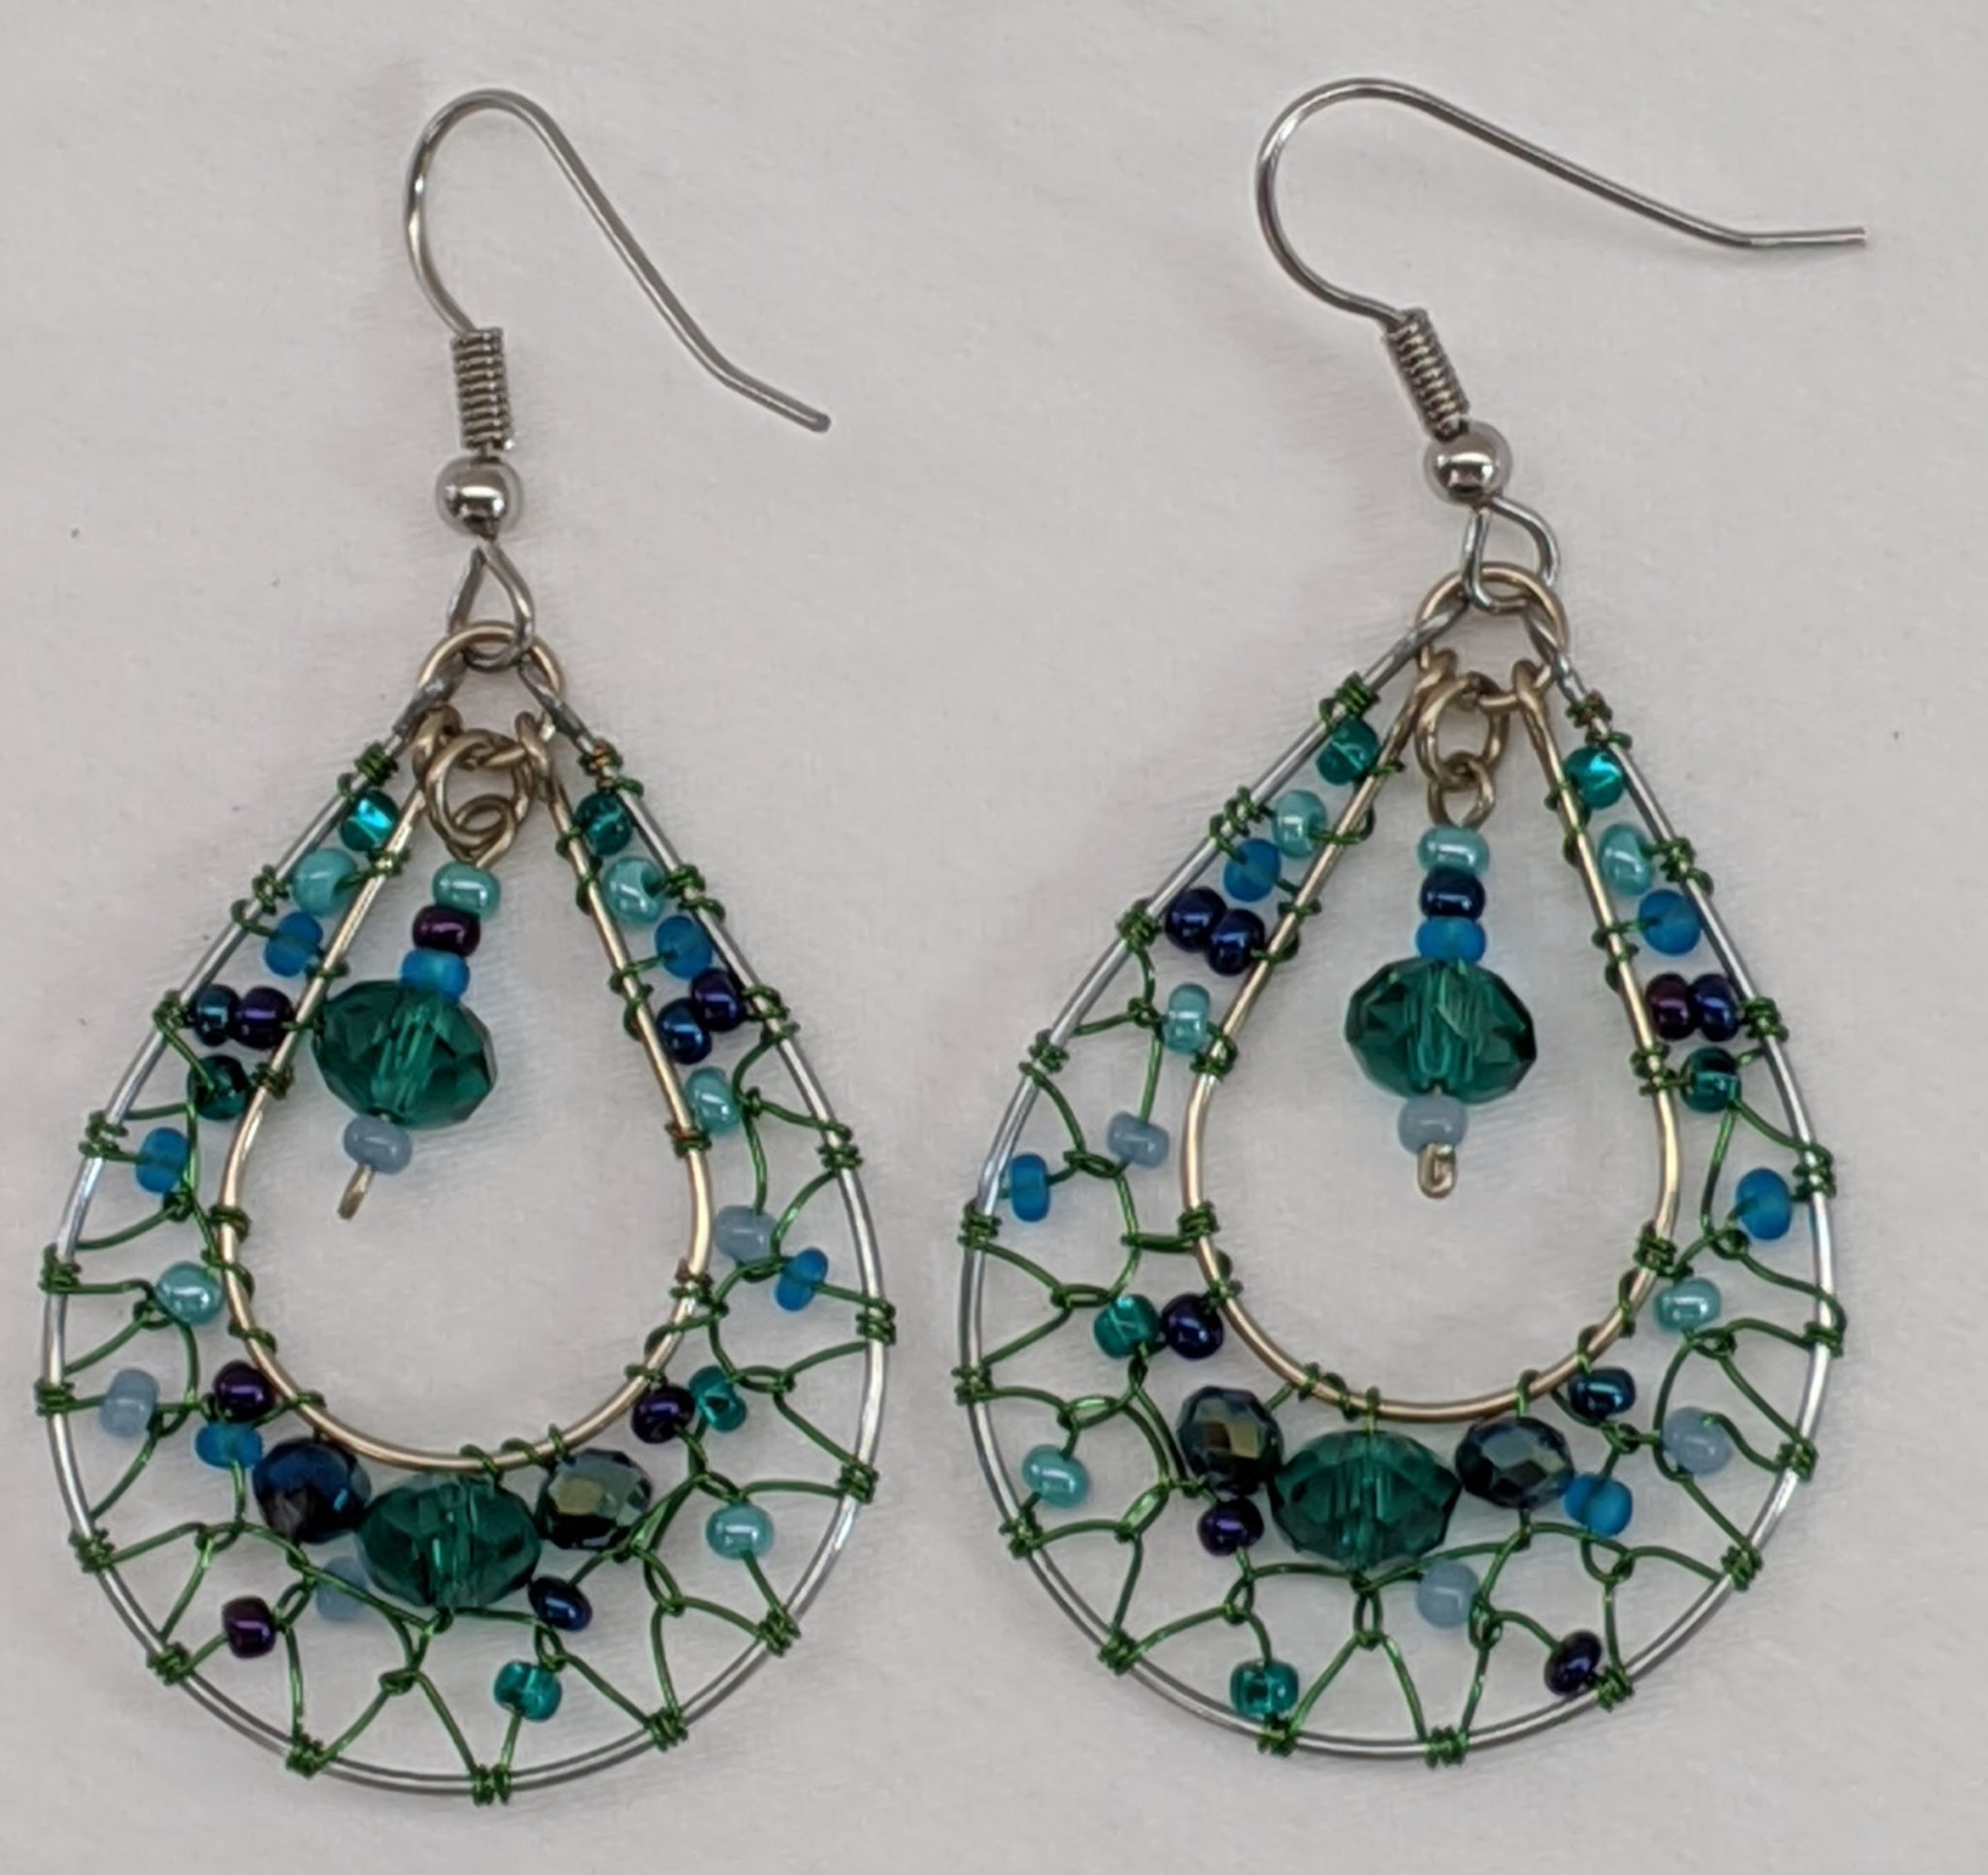 Teardrop Dreamcatcher Earrings - Teal and Blue